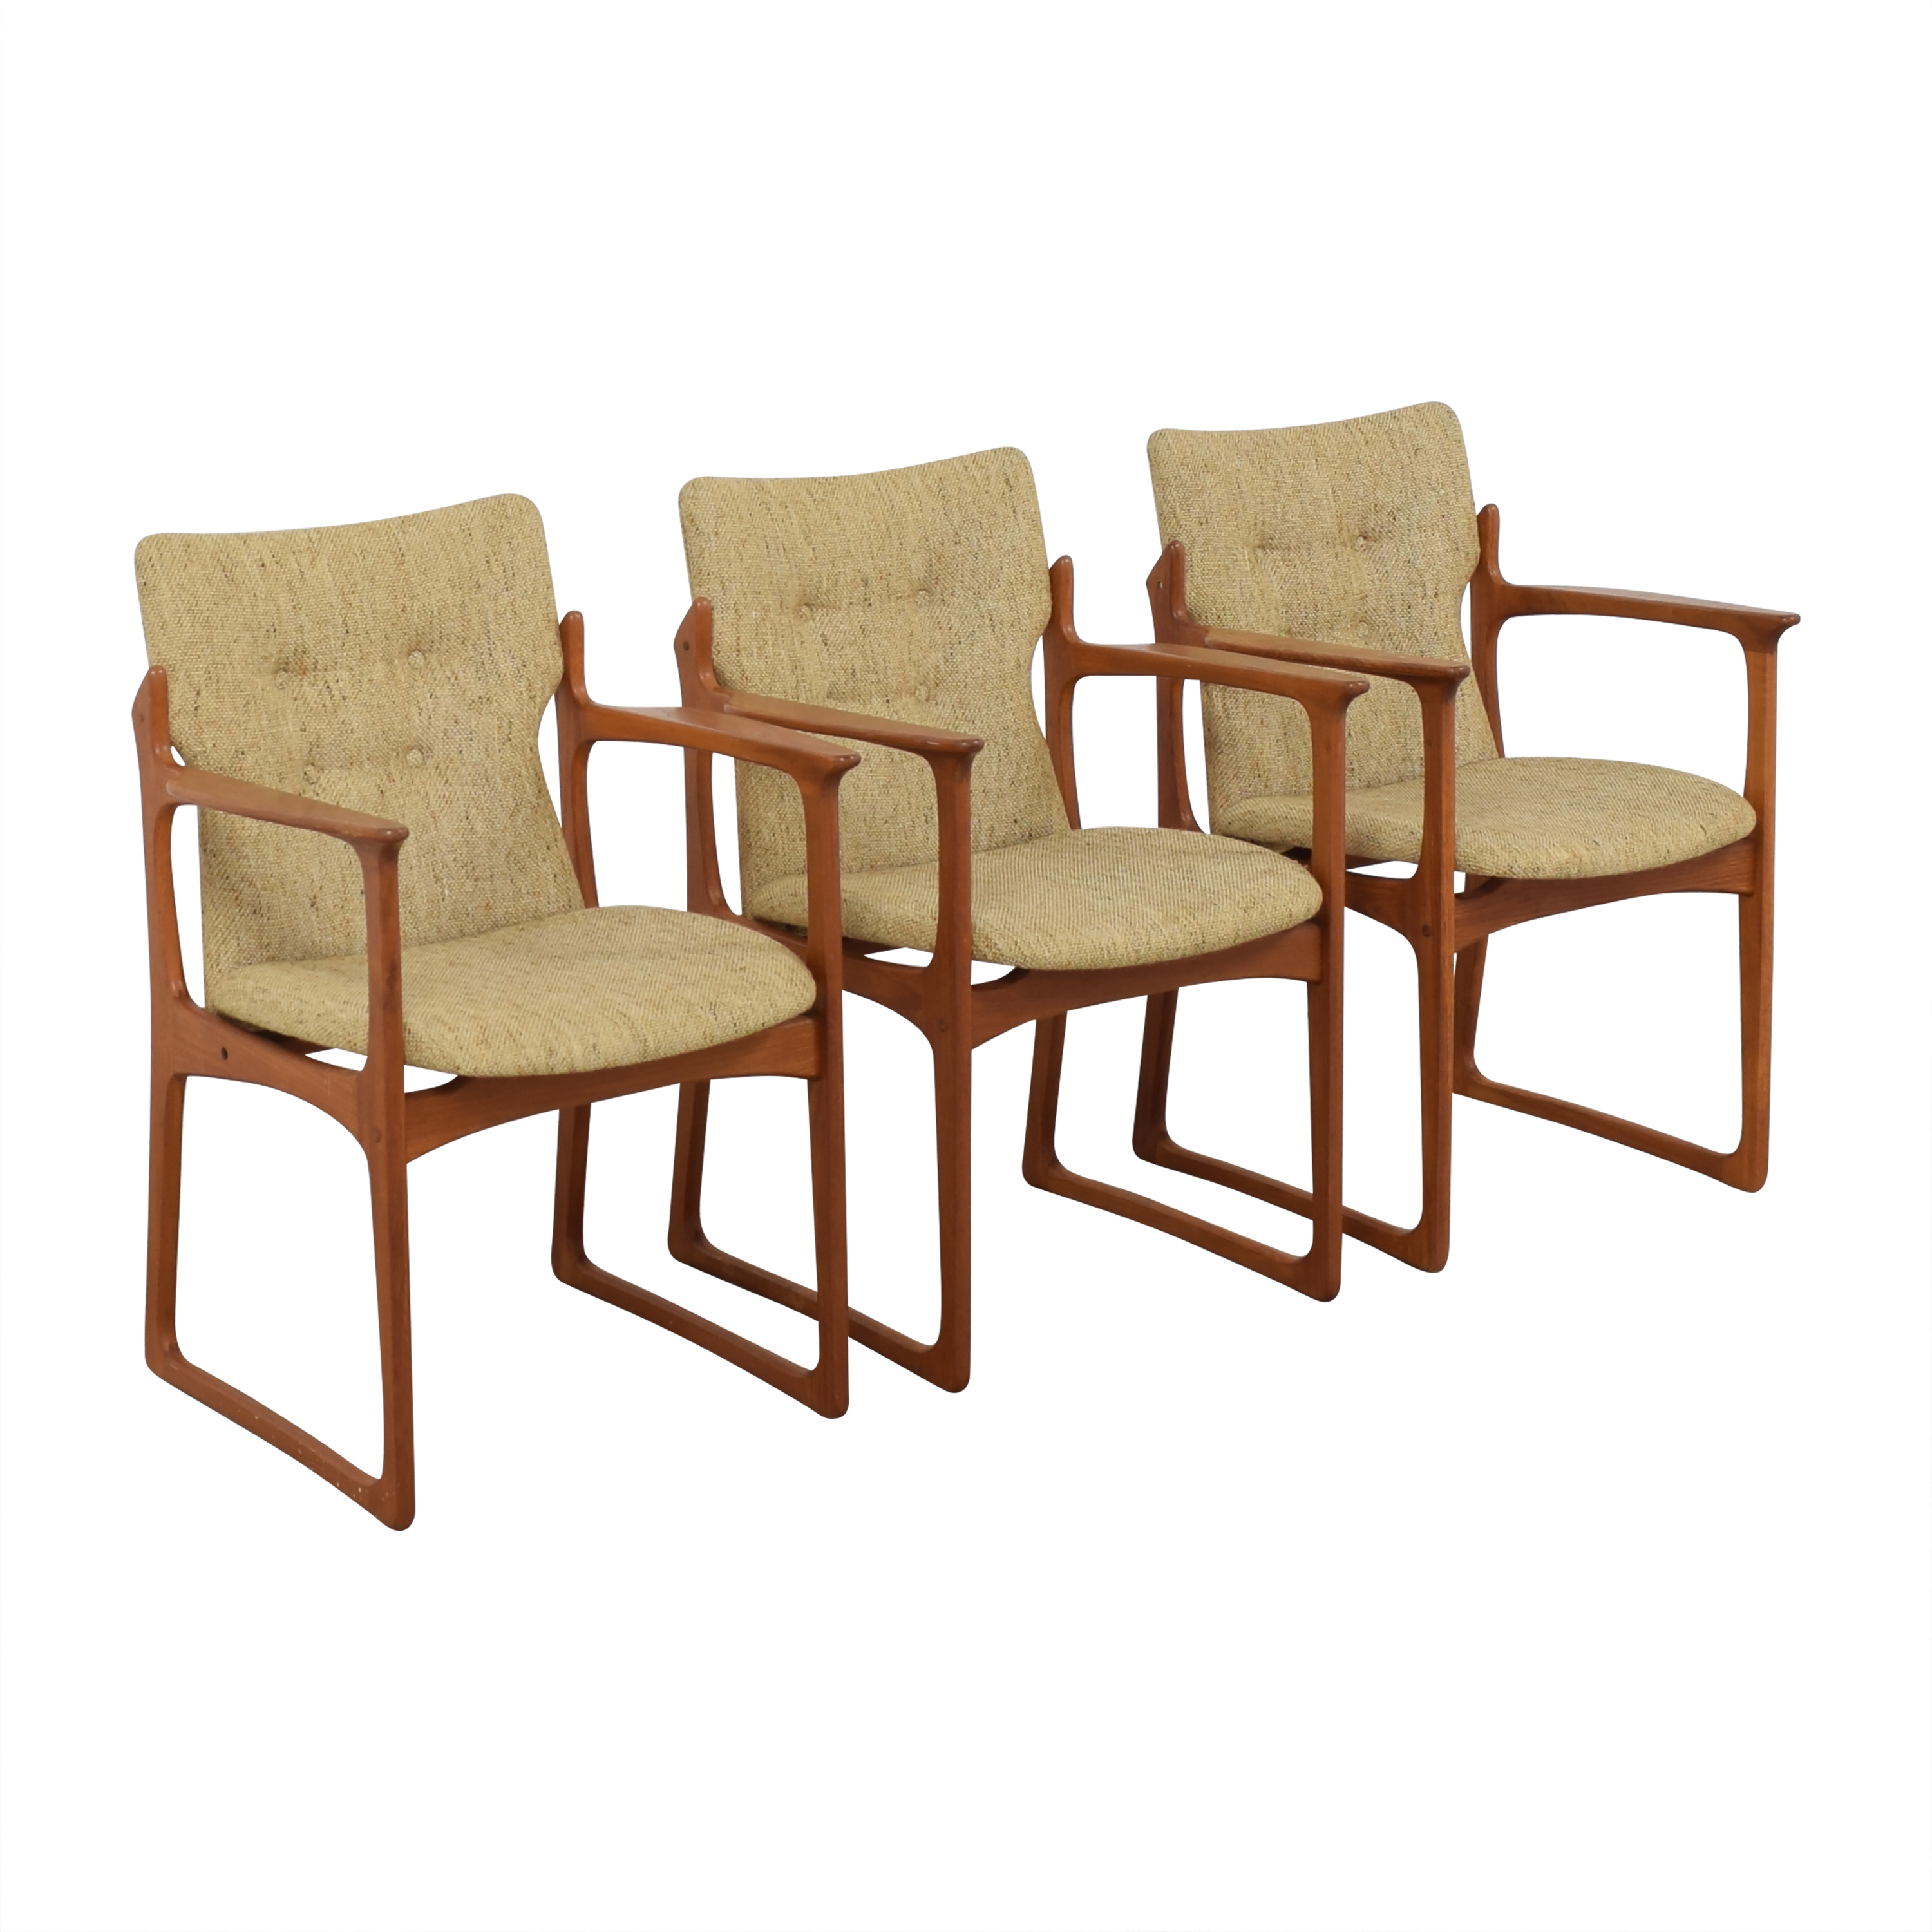 Vintage Danish Upholstered Dining Chairs  on sale